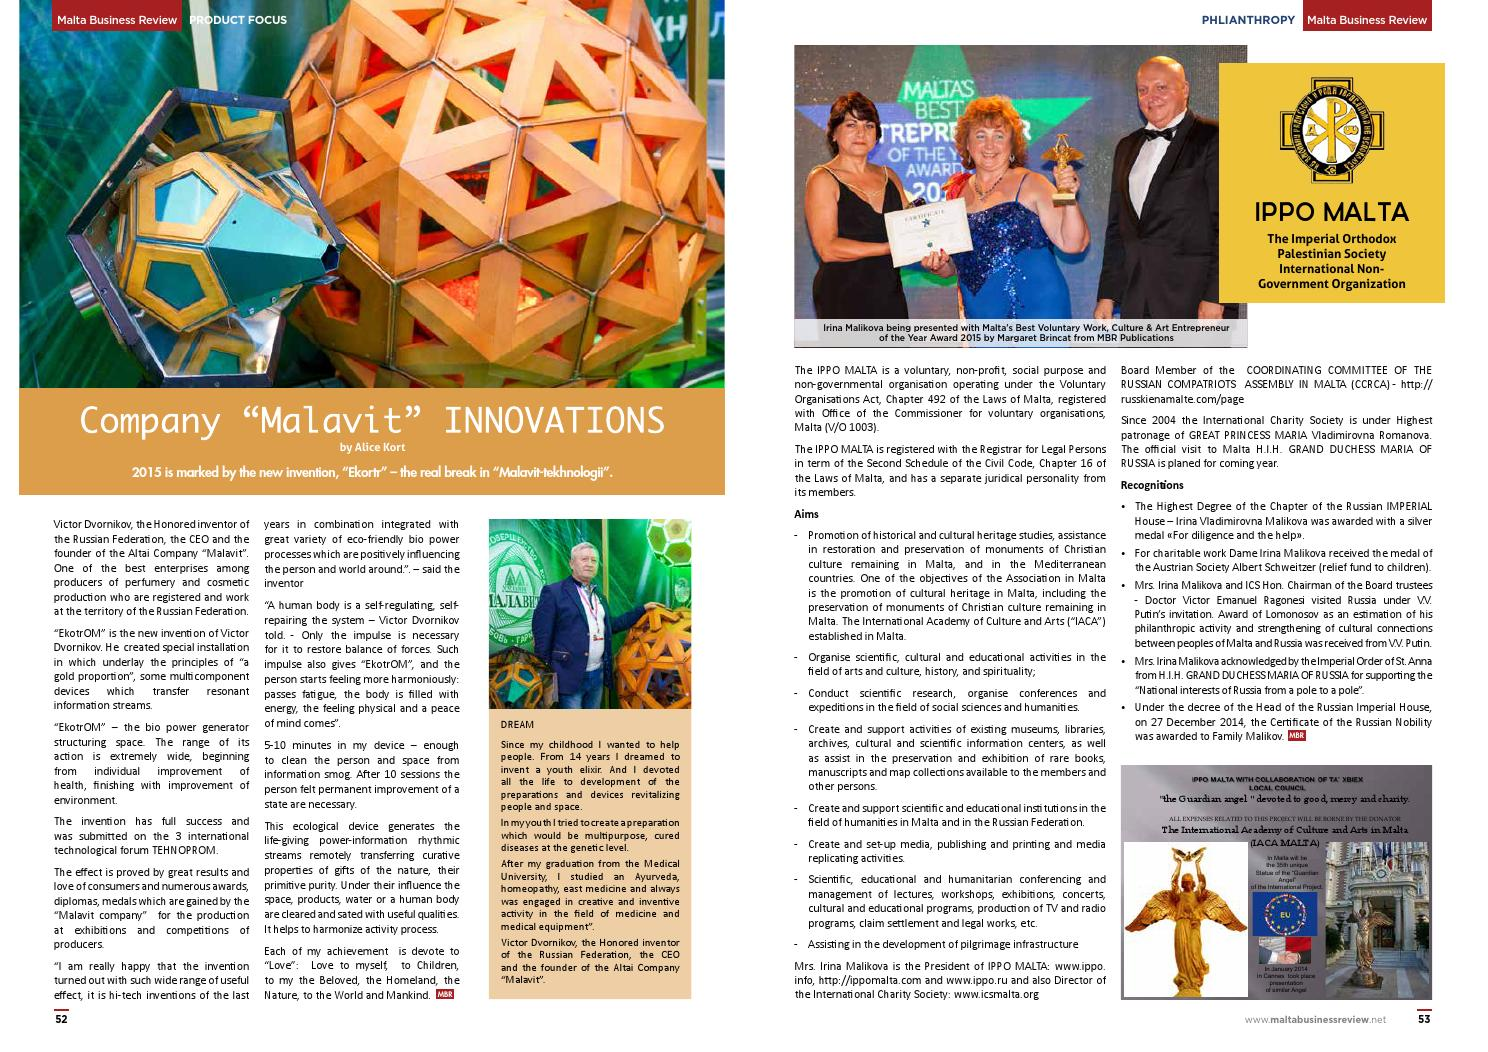 Malta Business Review Issue 12 By Adrian Friggieri Issuu